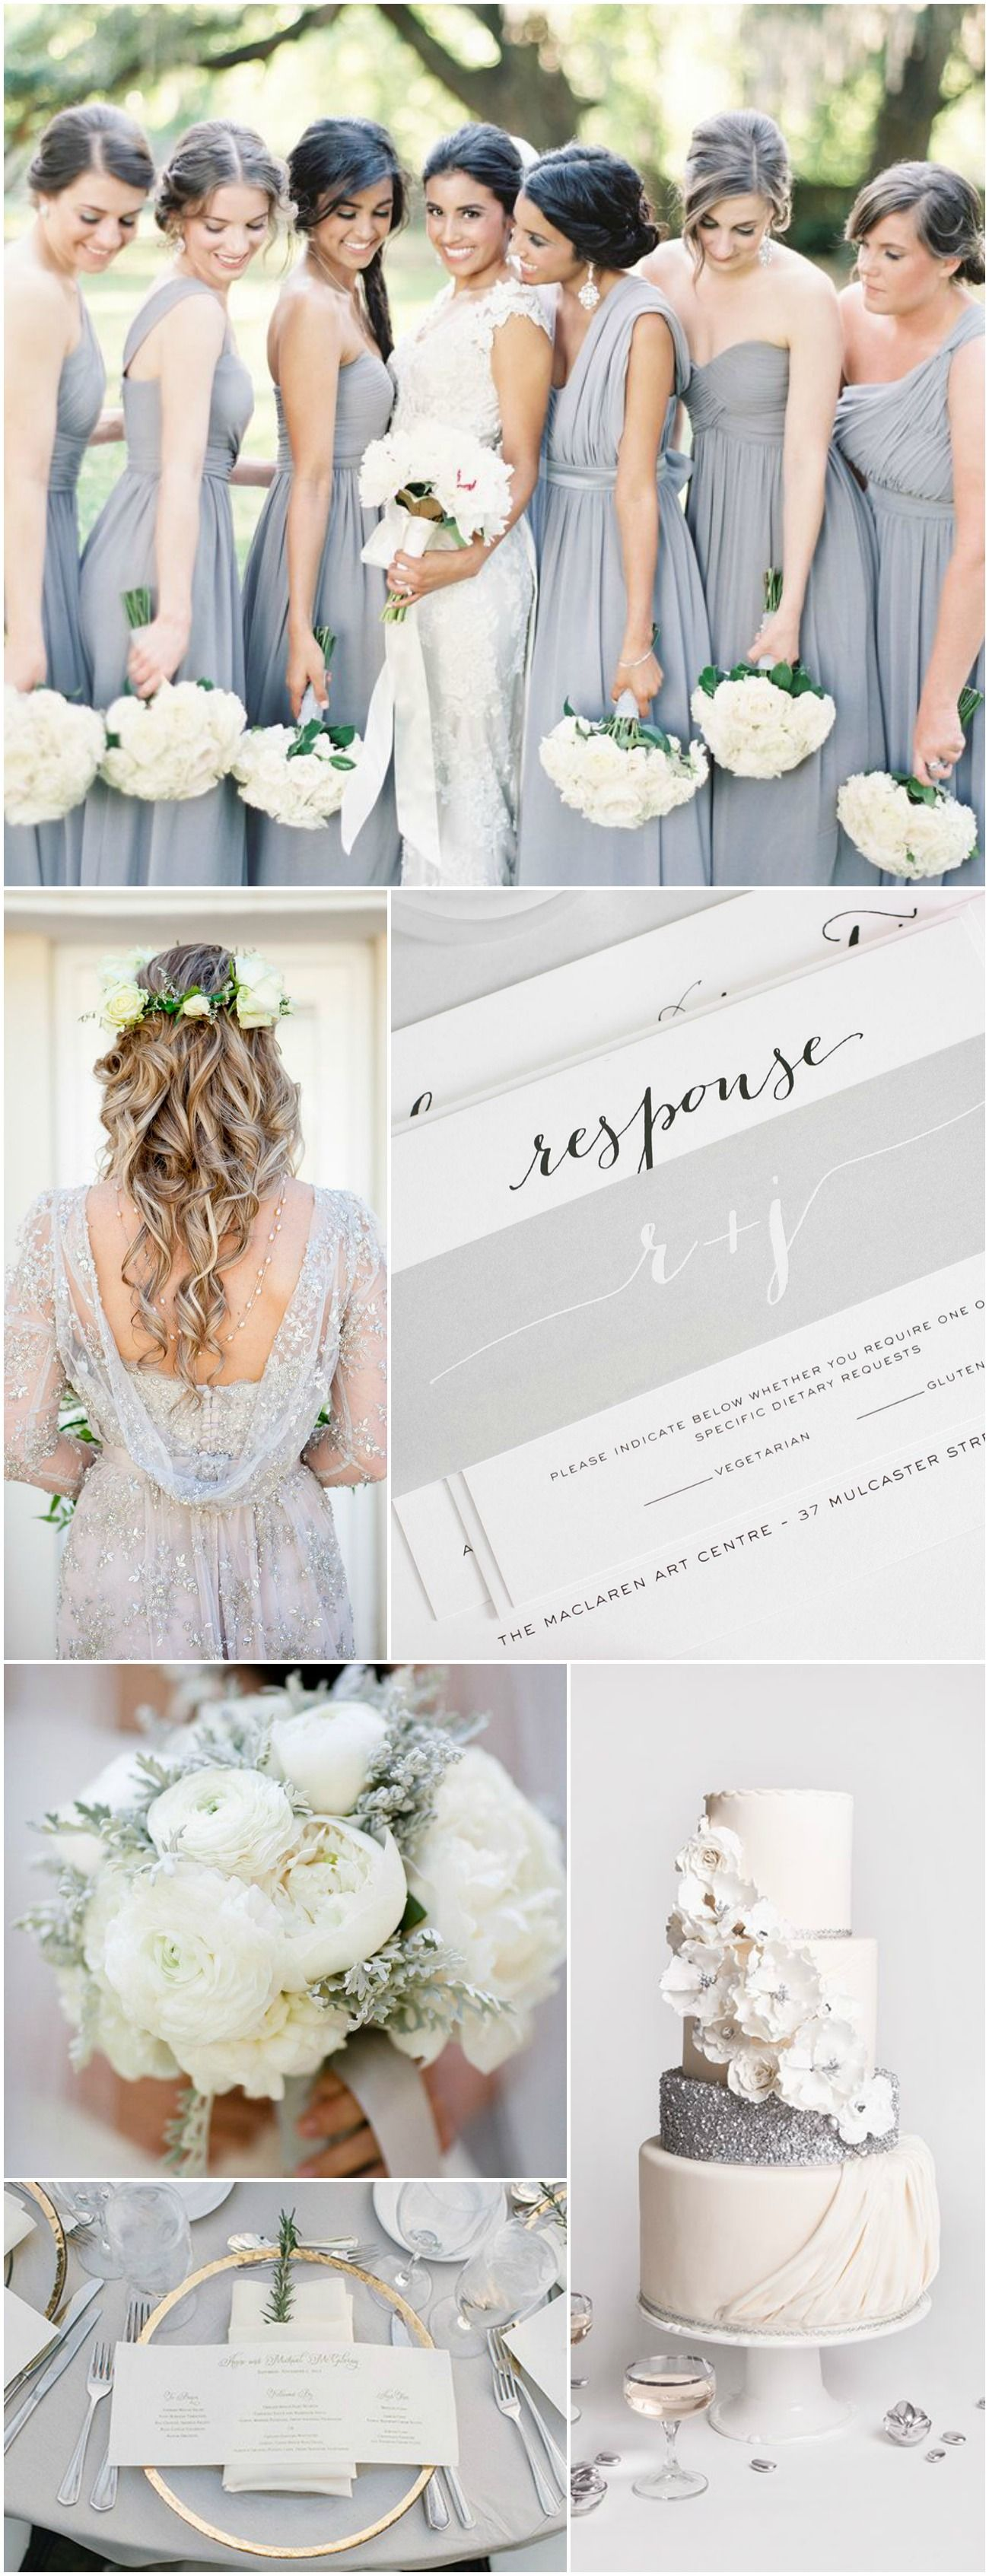 Silver Wedding Inspiration | Pinterest | Shine wedding invitations ...